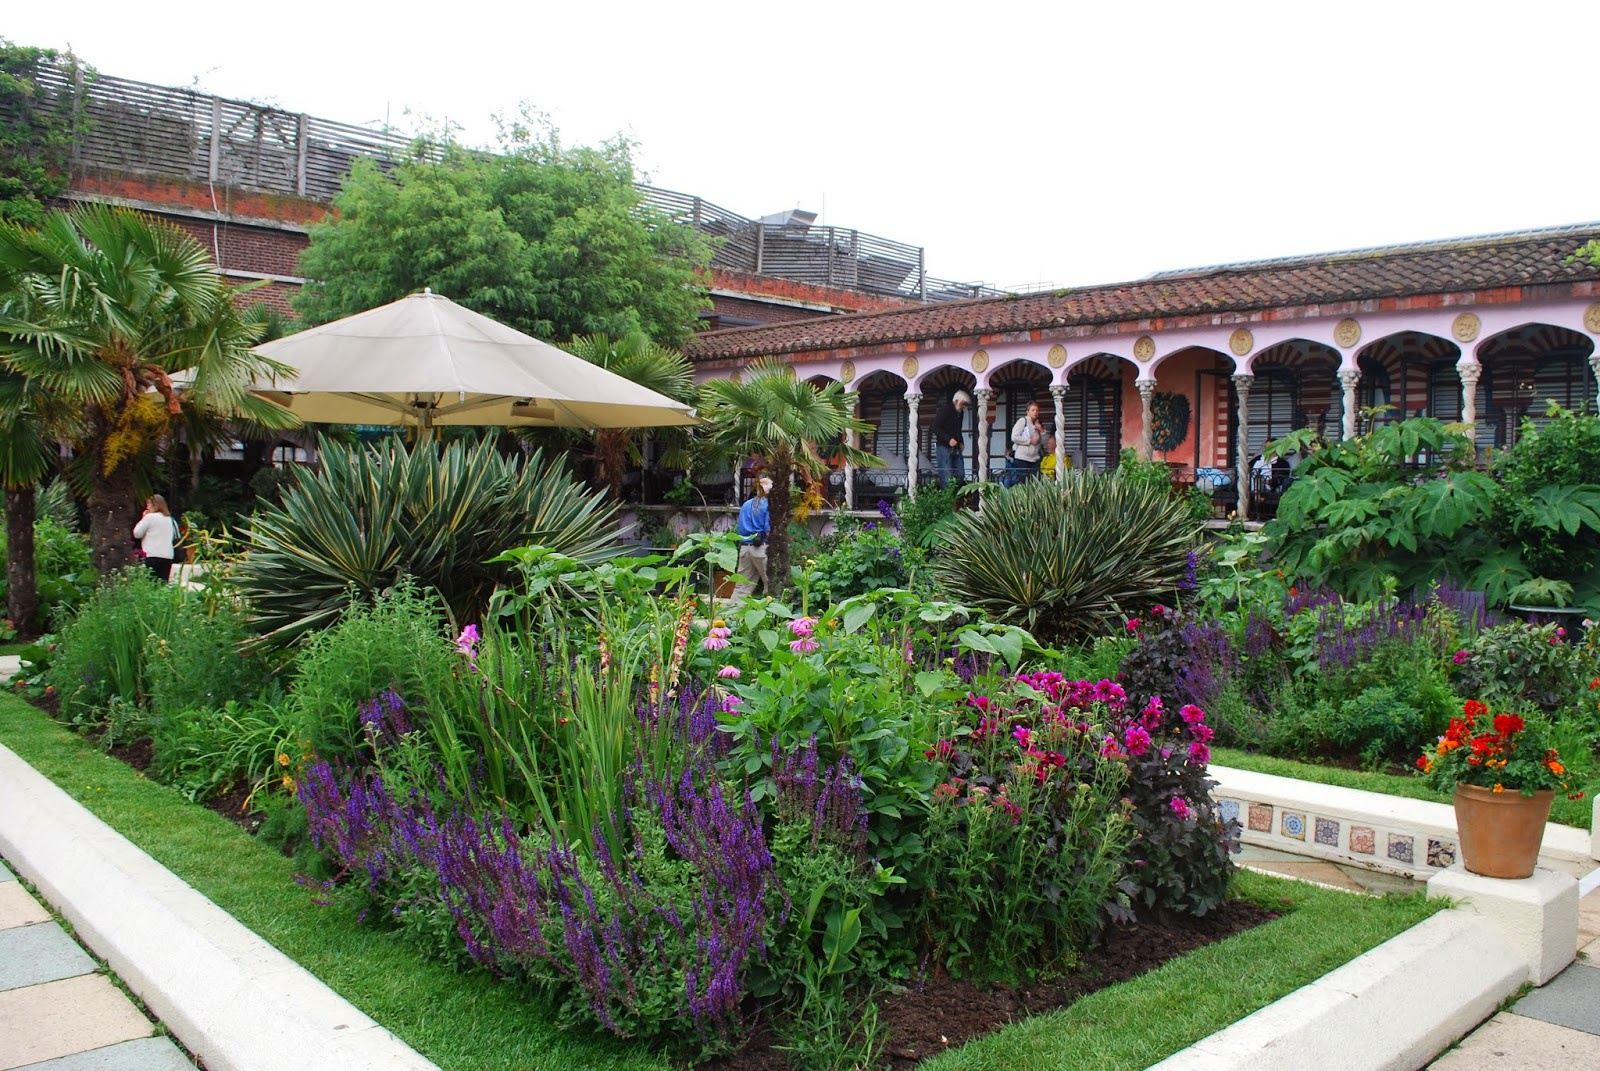 The Spanish Garden Was Very Striking With Mediterranean Plants And Colours.